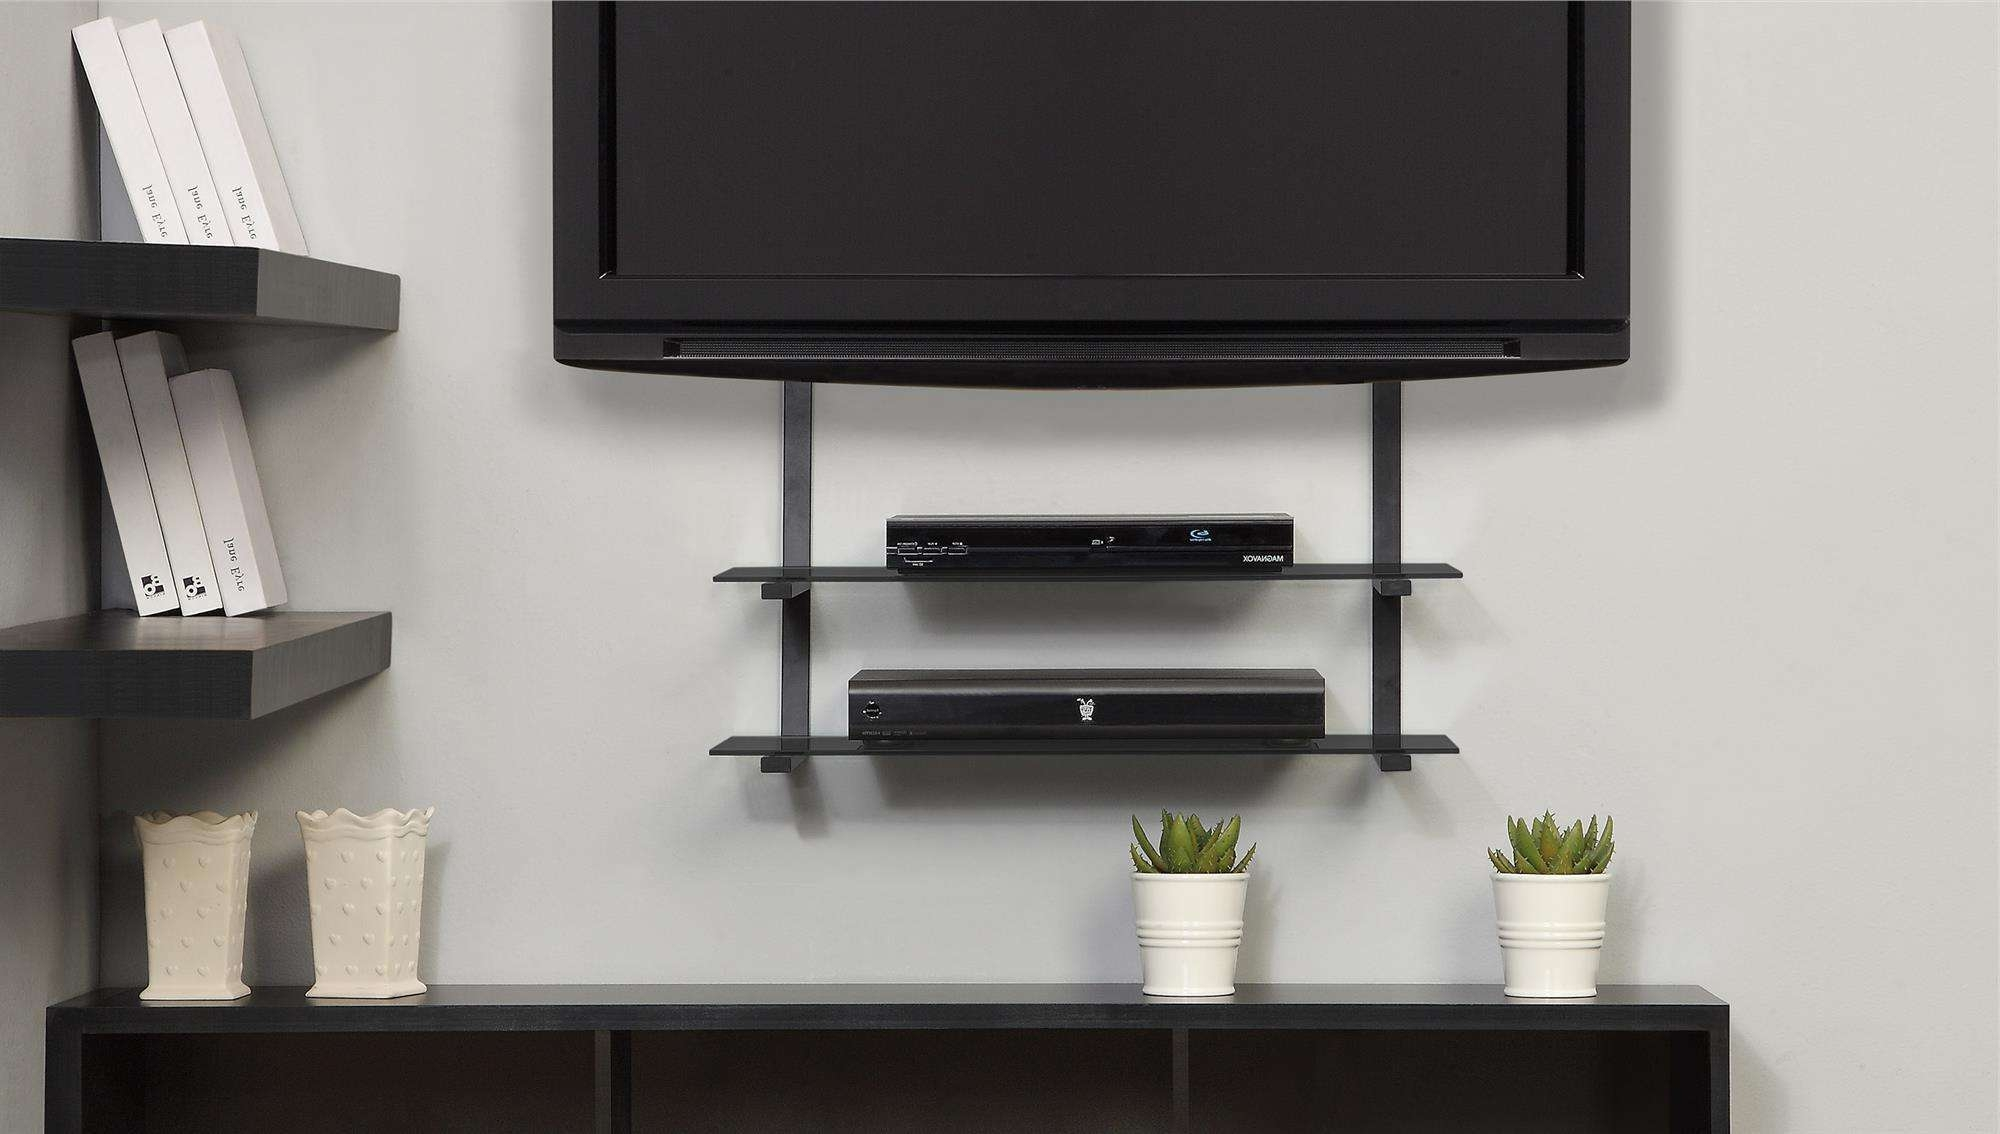 Extraordinary Ideas Tv Wall Mount Shelves Impressive Decoration With Regard To Wall Mounted Tv Stands With Shelves (View 9 of 15)